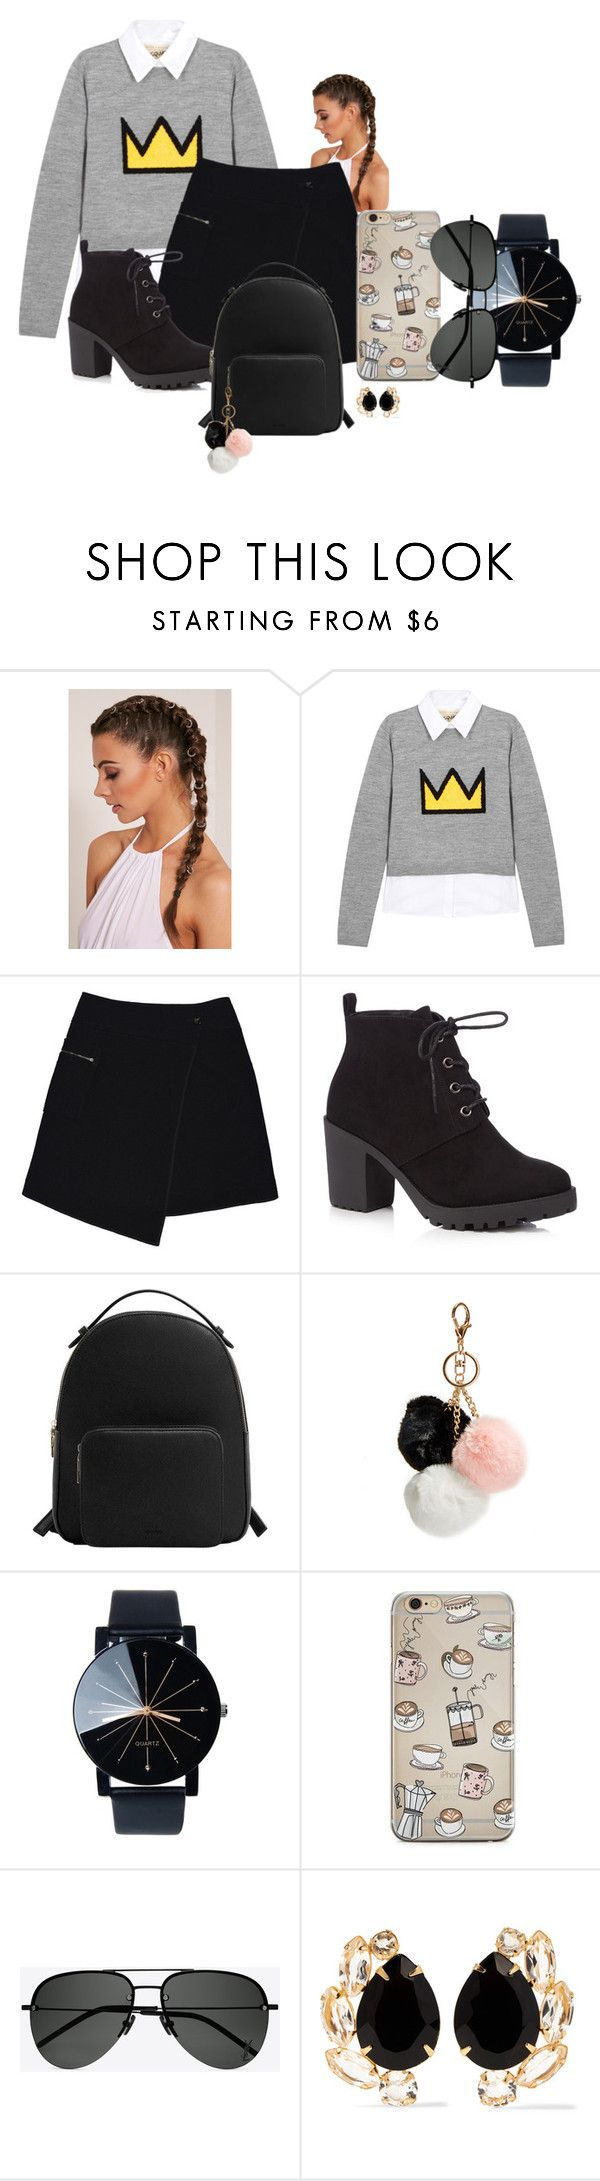 """no description"" by korifashion on Polyvore featuring Alice + Olivia, MARC CAIN, Red Herring, MANGO, GUESS, Yves Saint Laurent and Bounkit"